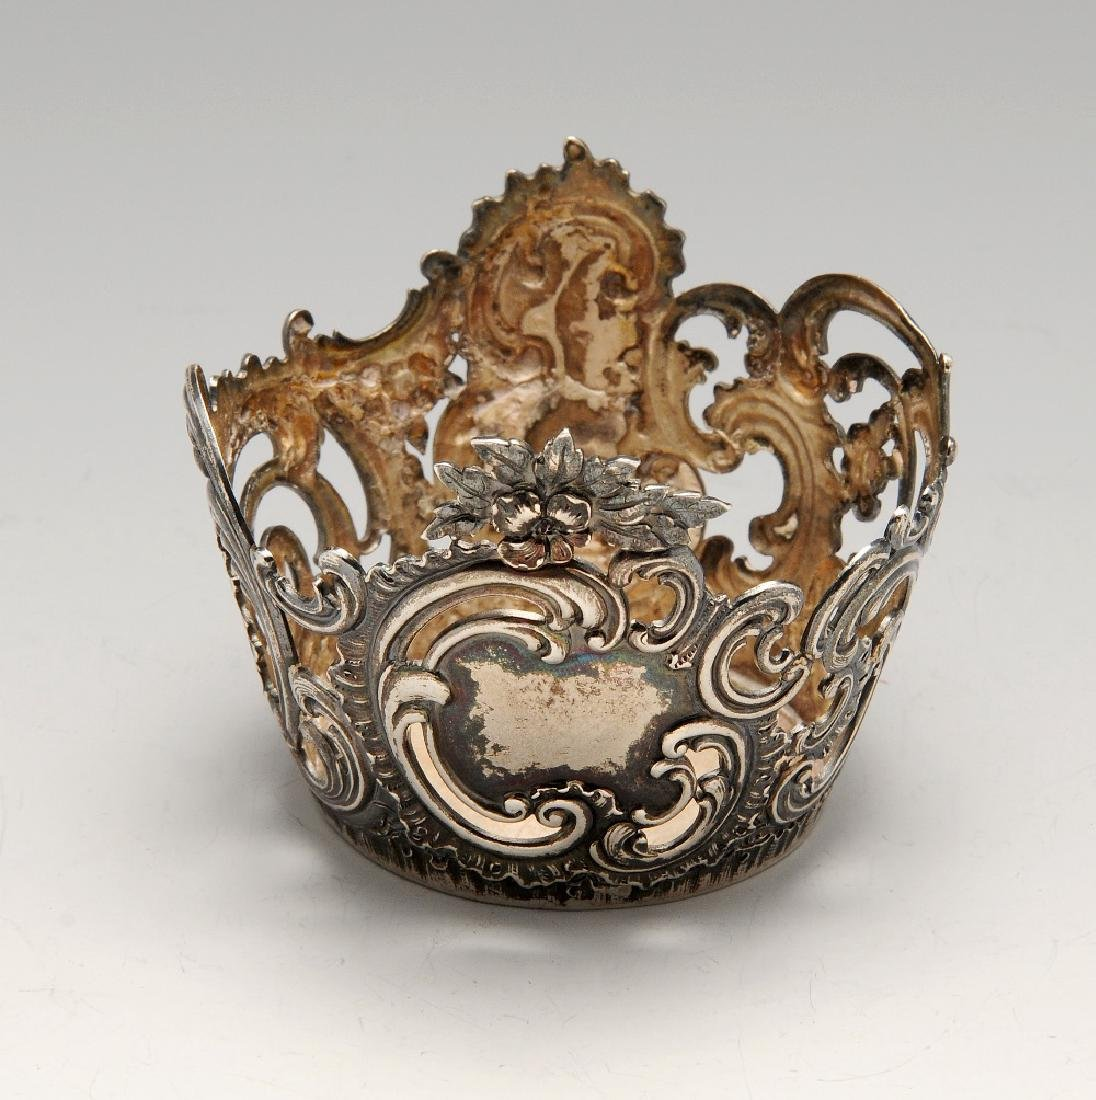 A turn of the century Russian silver mount by Fabergé,